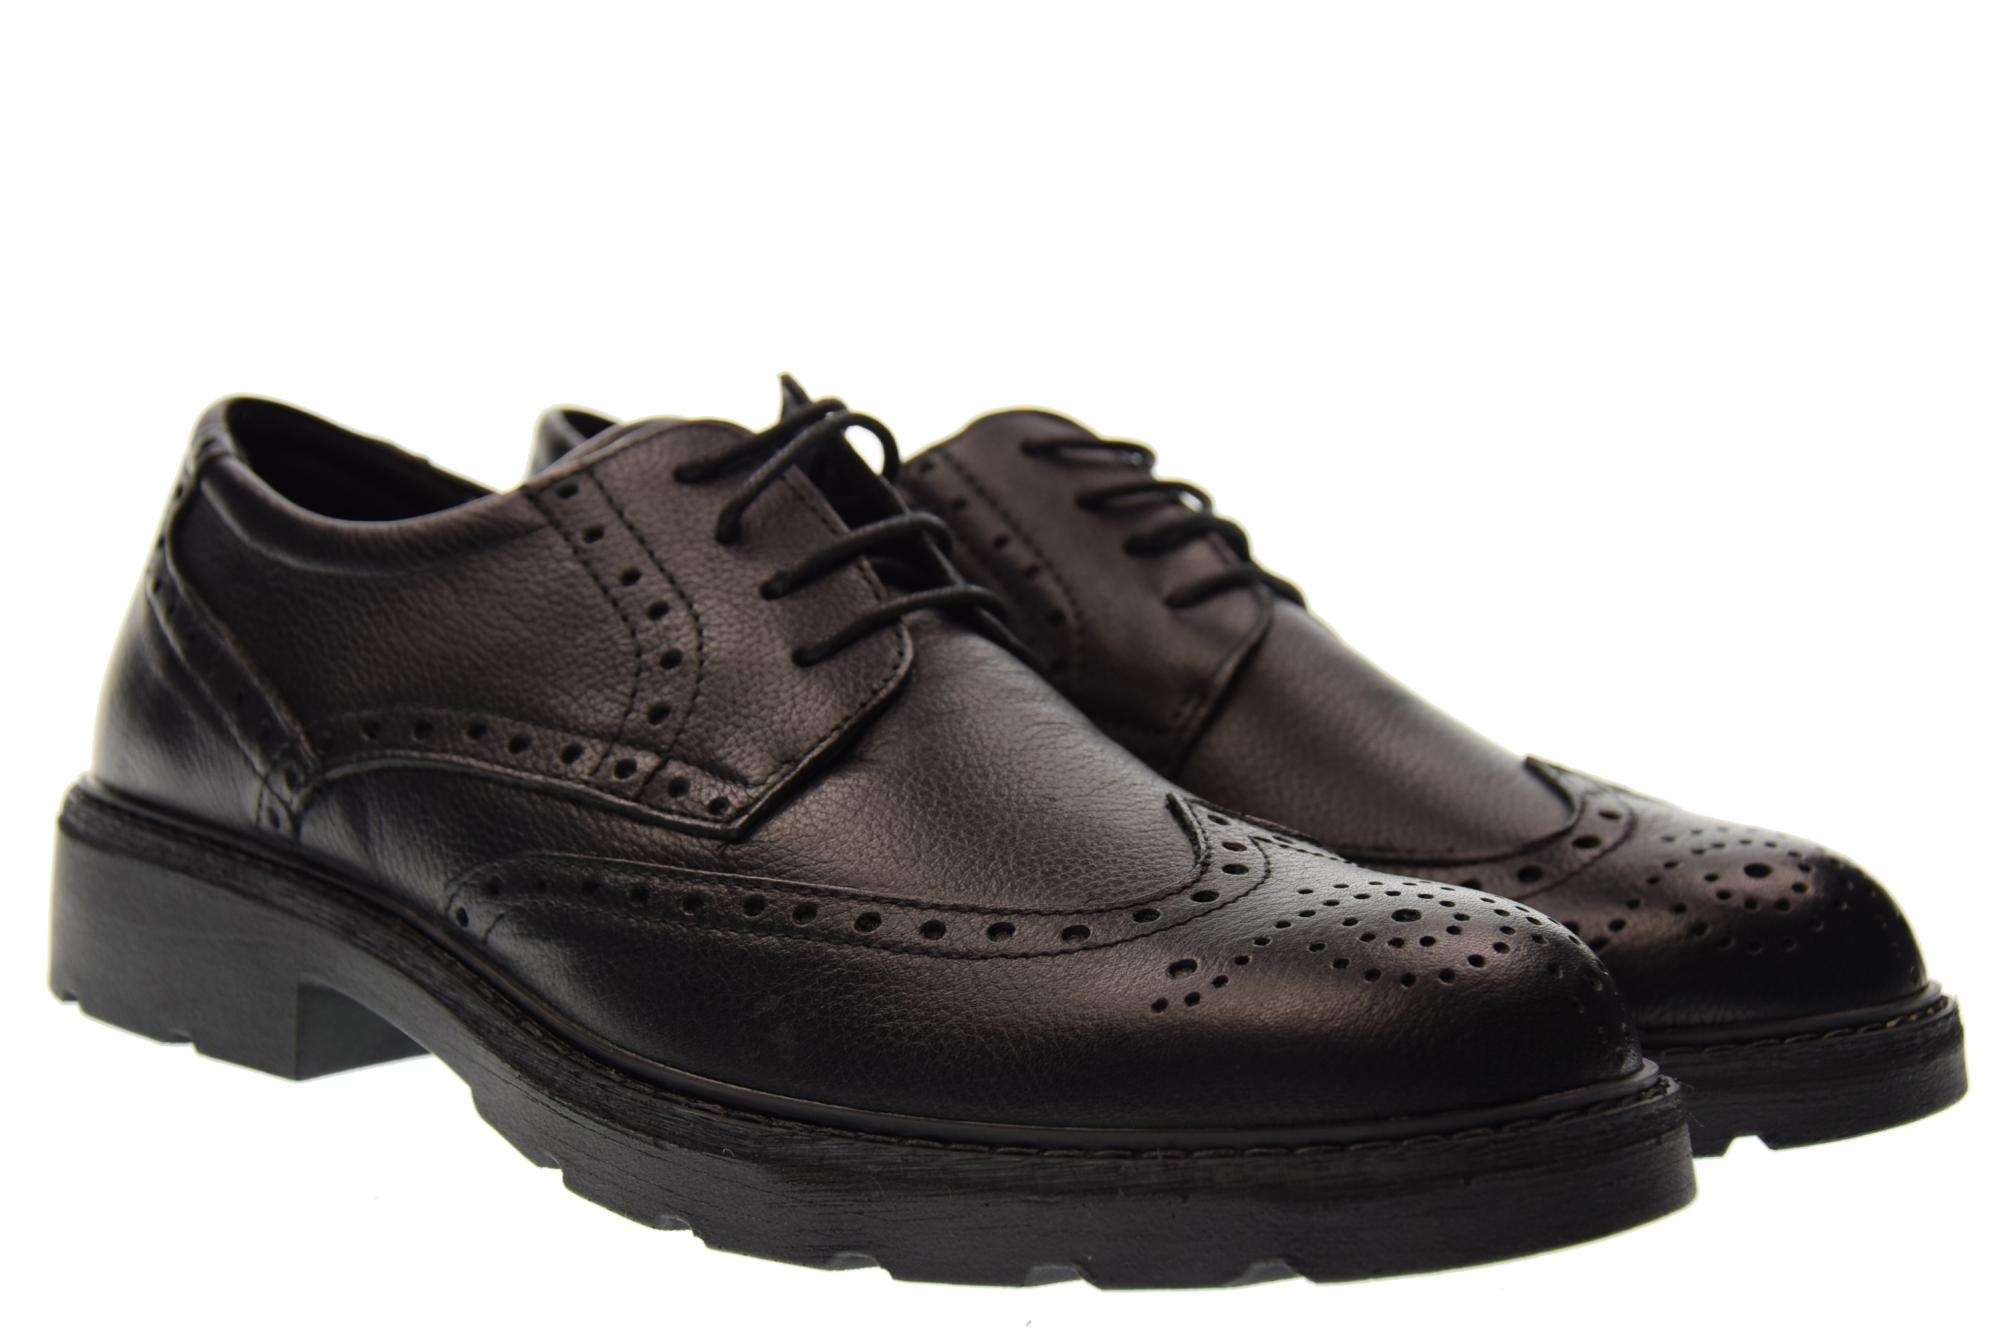 Enval Soft A17f Chaussure Chaussure Chaussure homme Anglaises 88850 00 negro a437b2